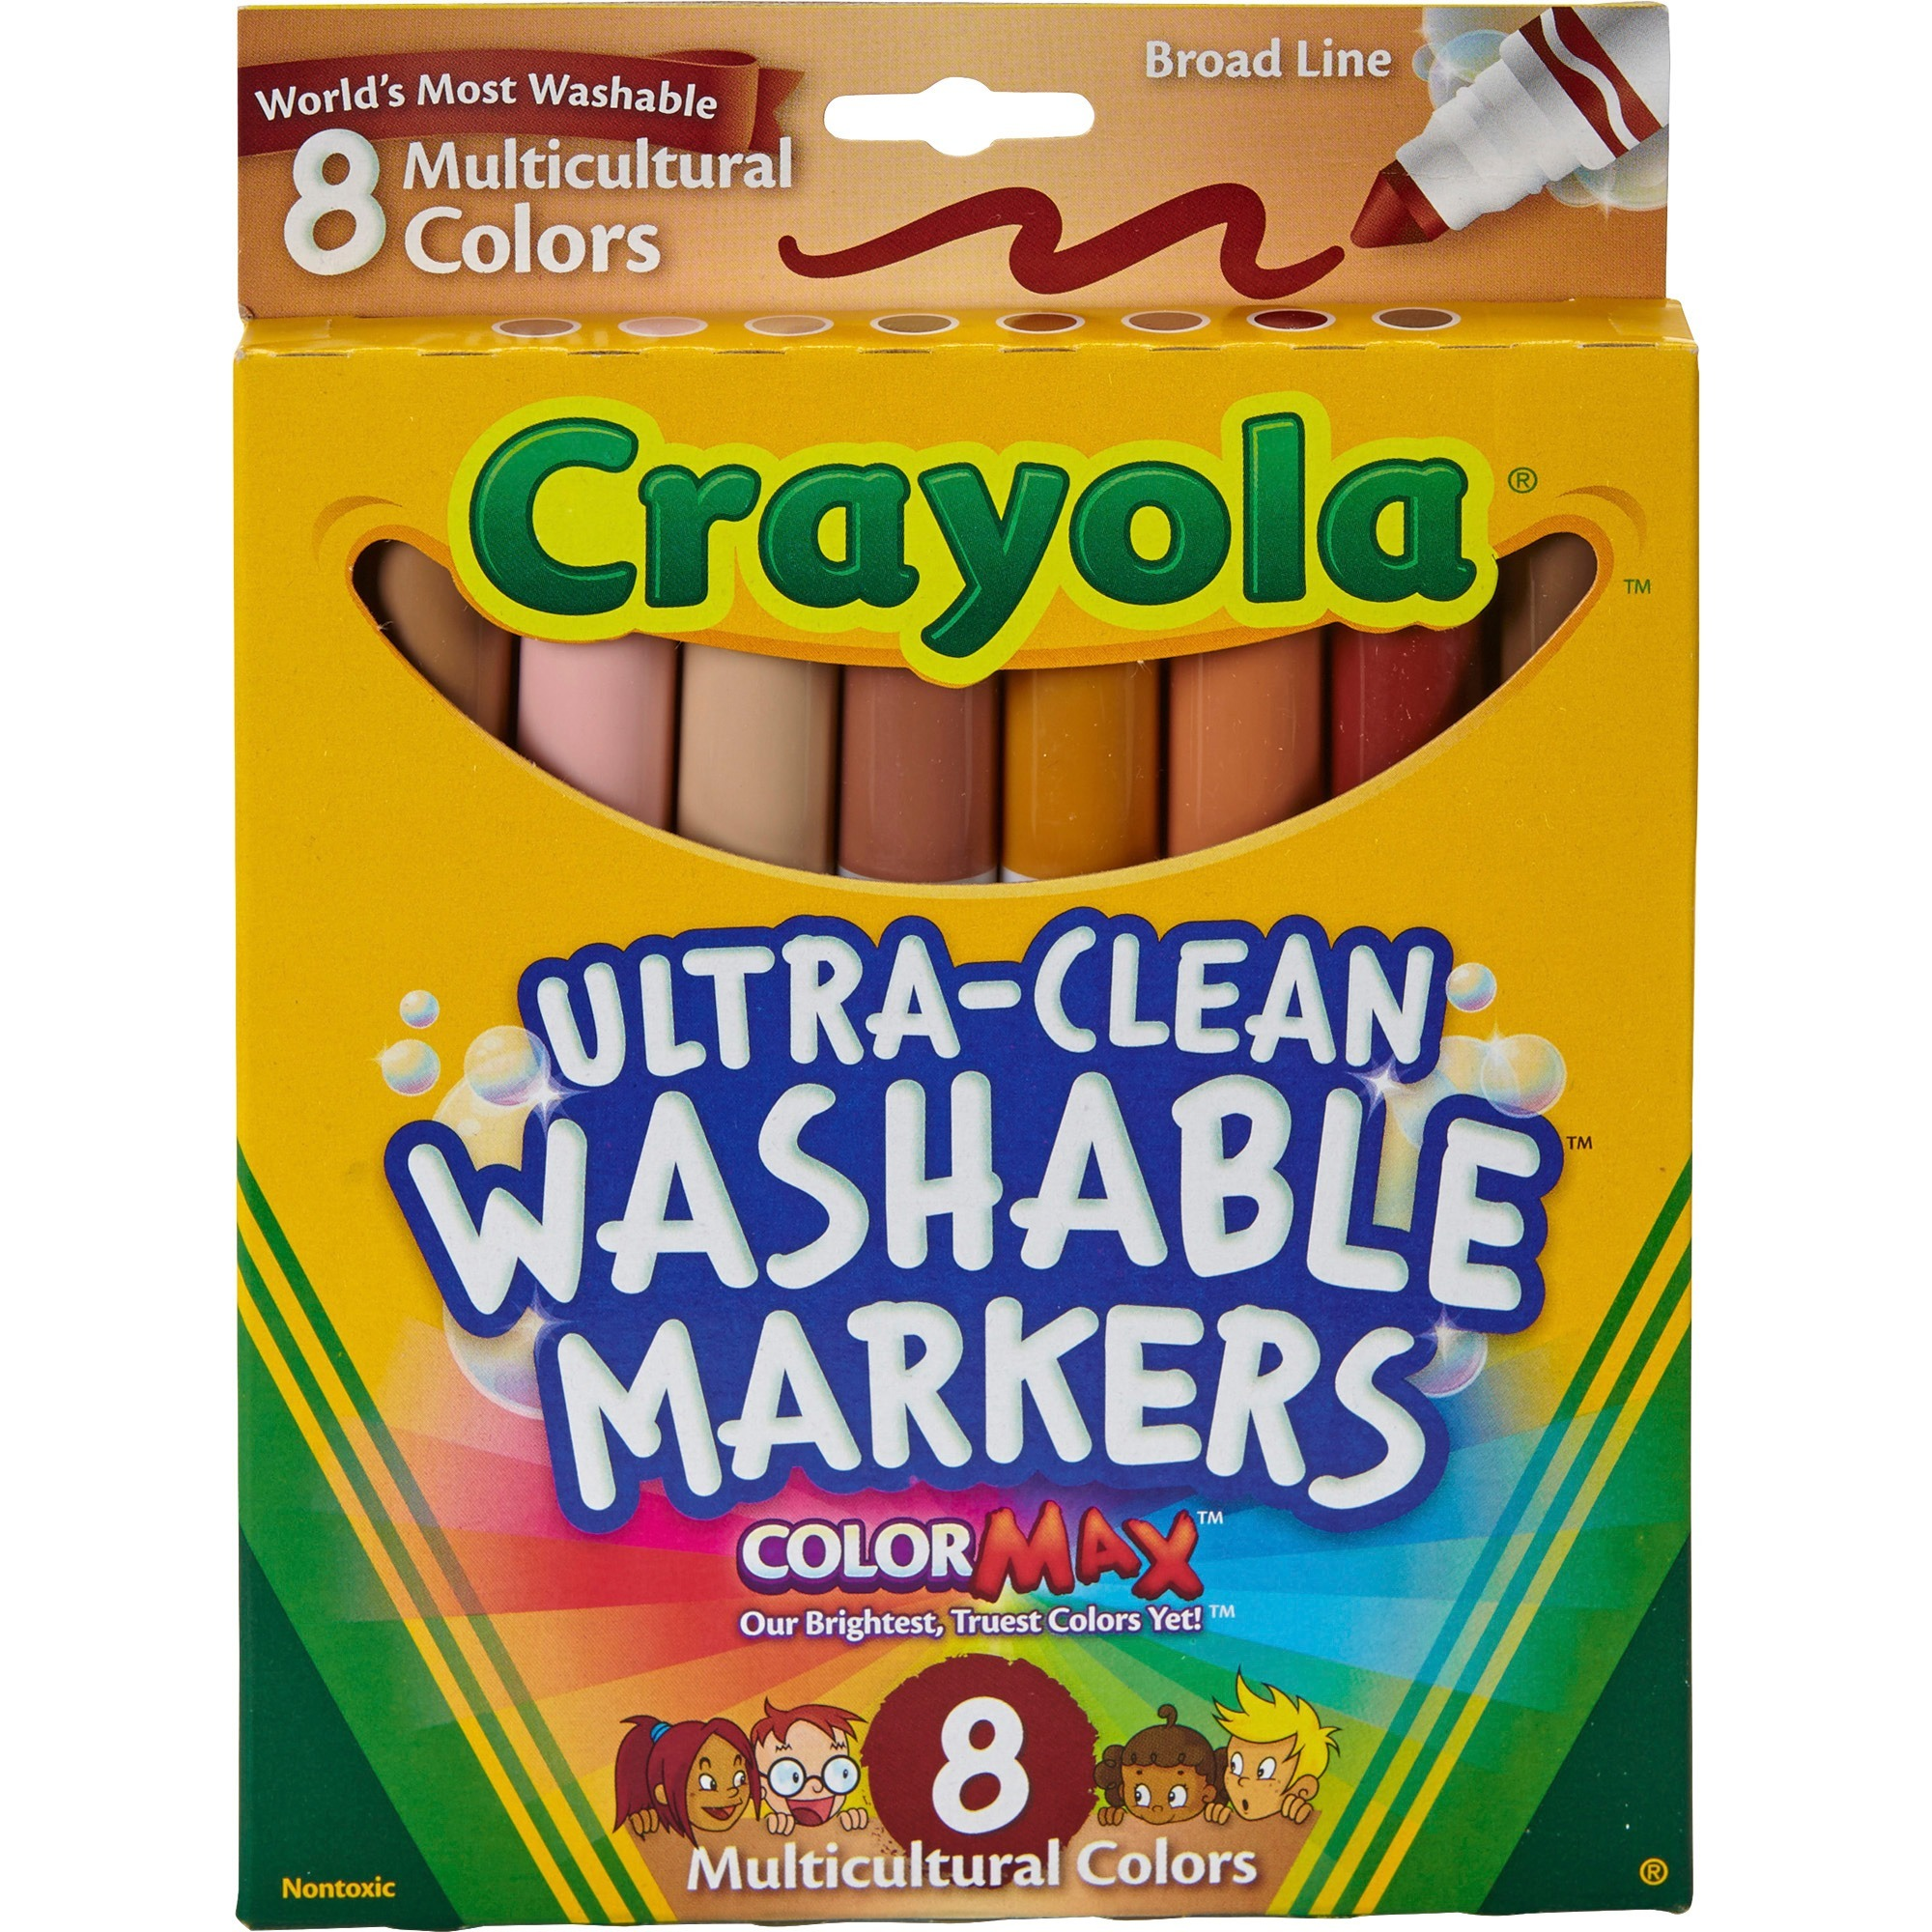 Crayola Multicultural Washable Markers, 8 Count